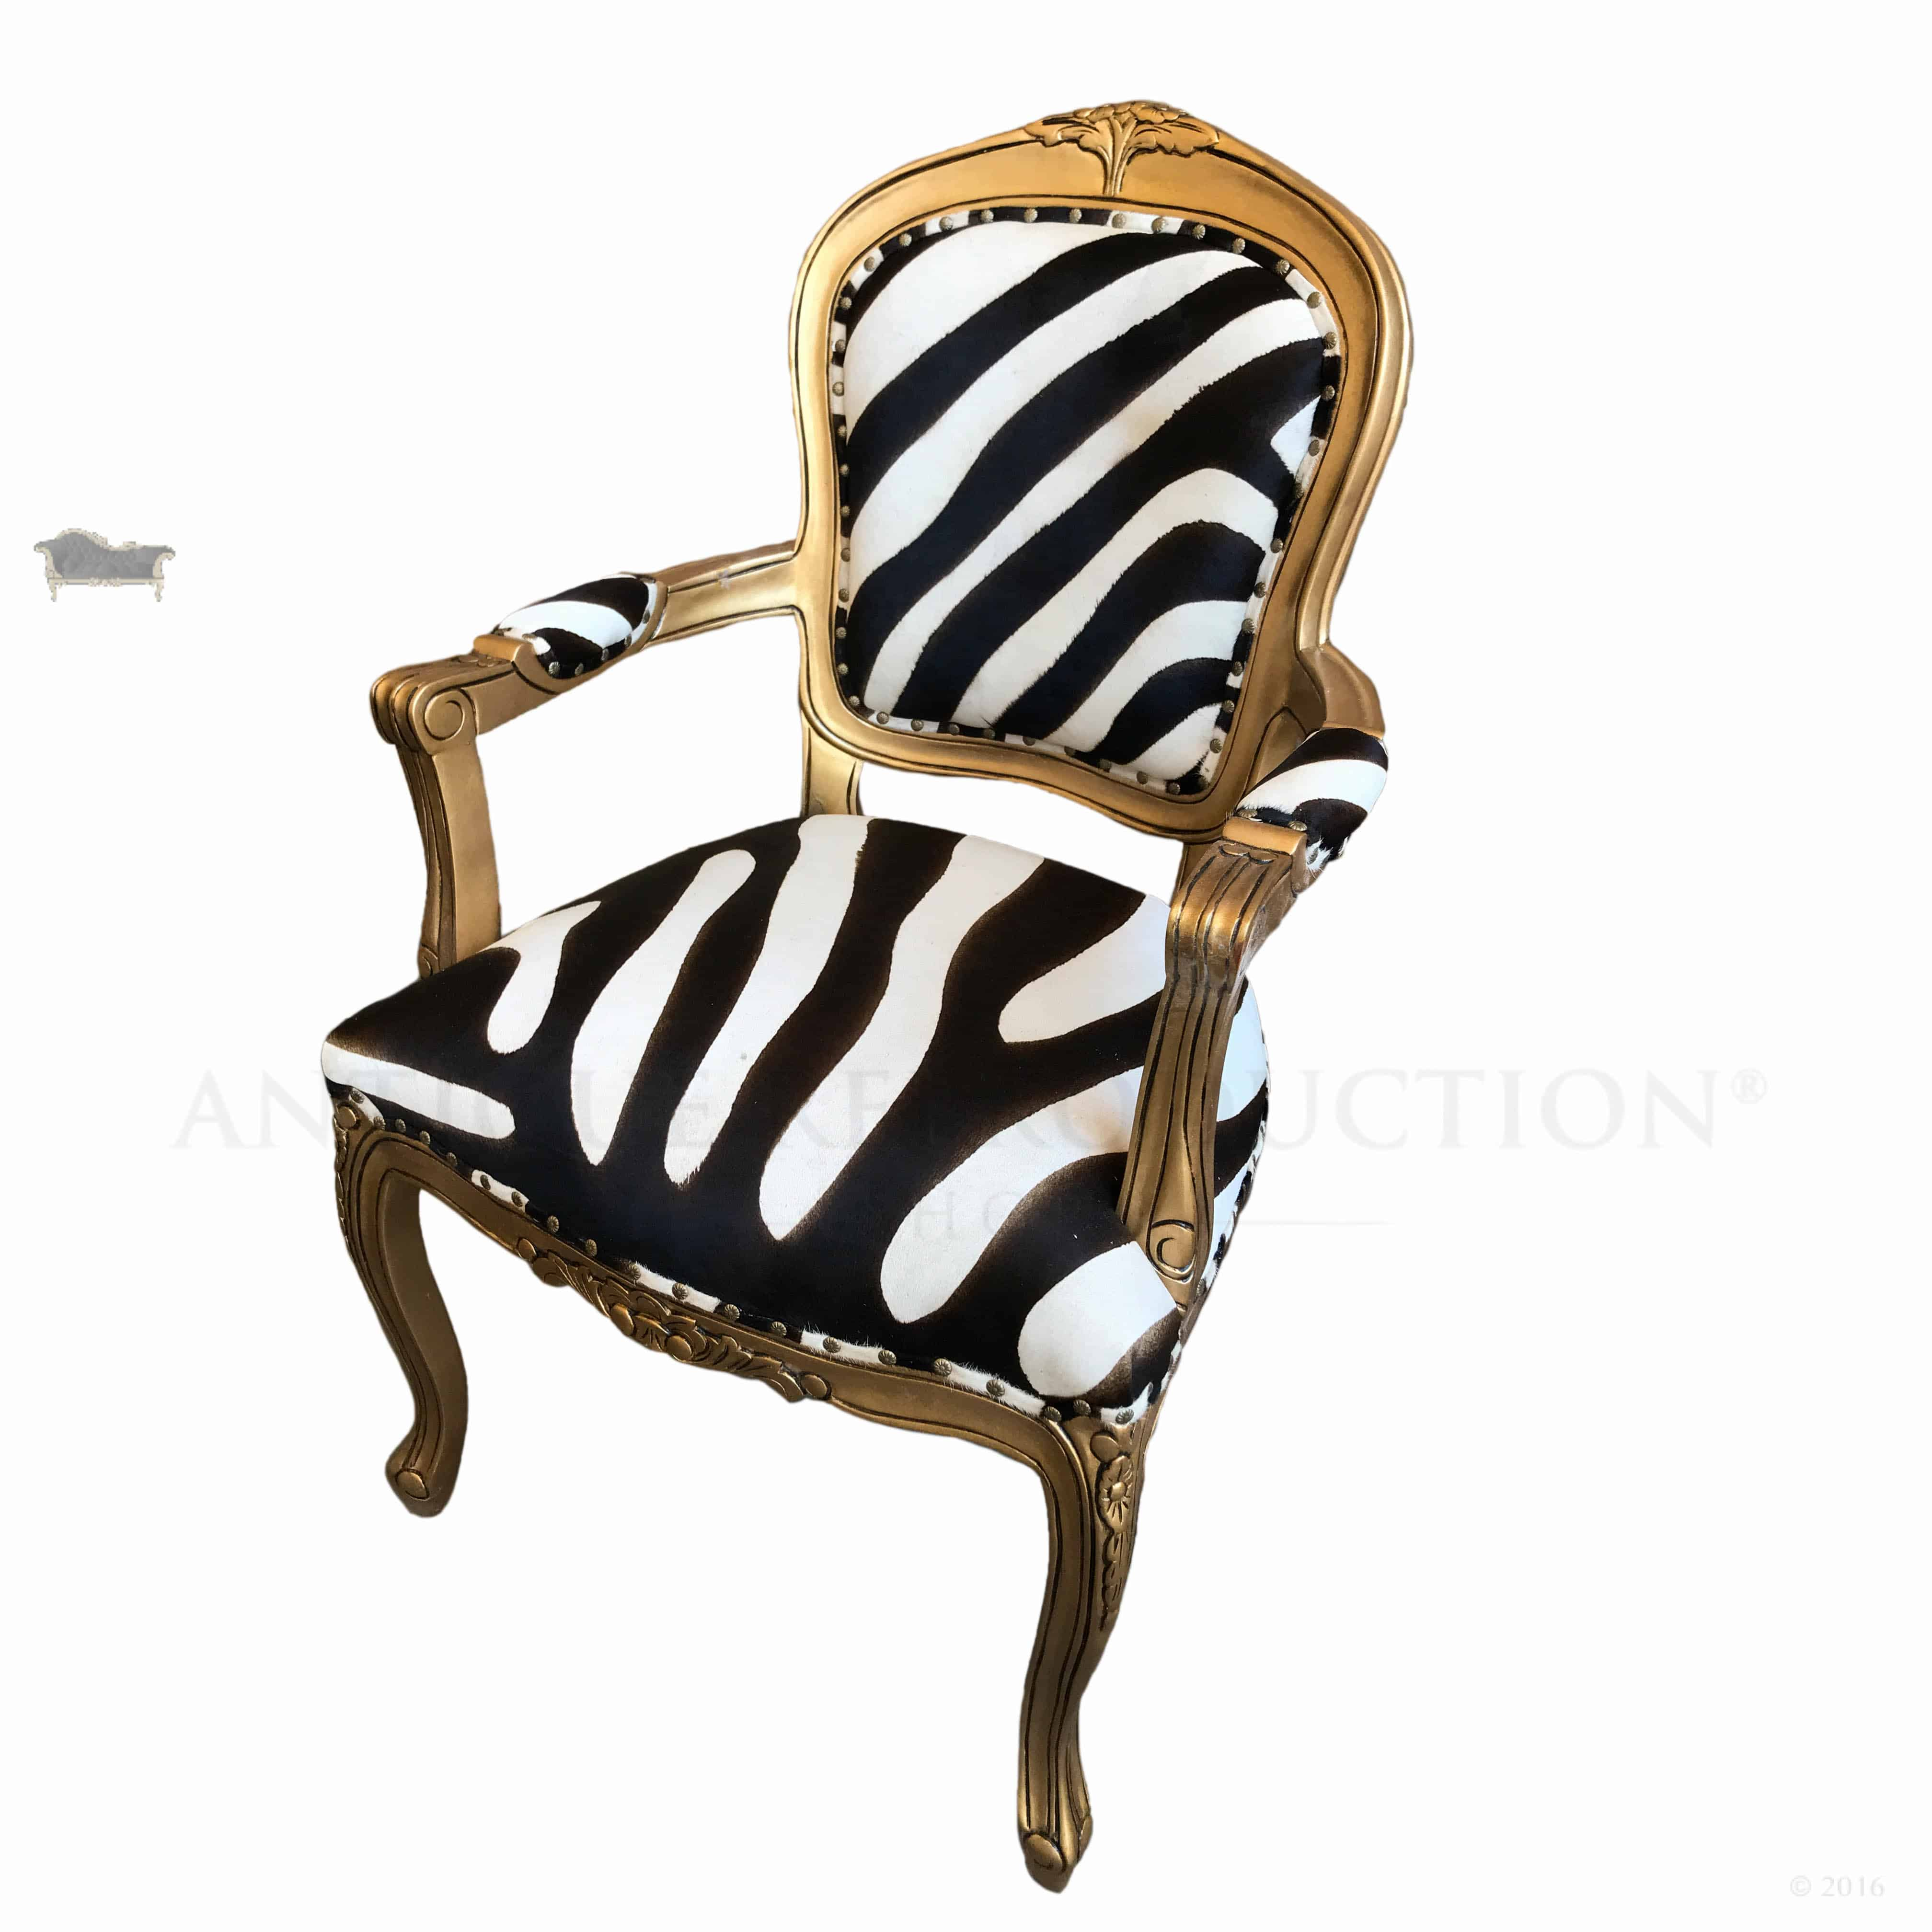 Cow Print Chair Cow Hyde Zebra Print Louis Chair Antique Reproduction Shop